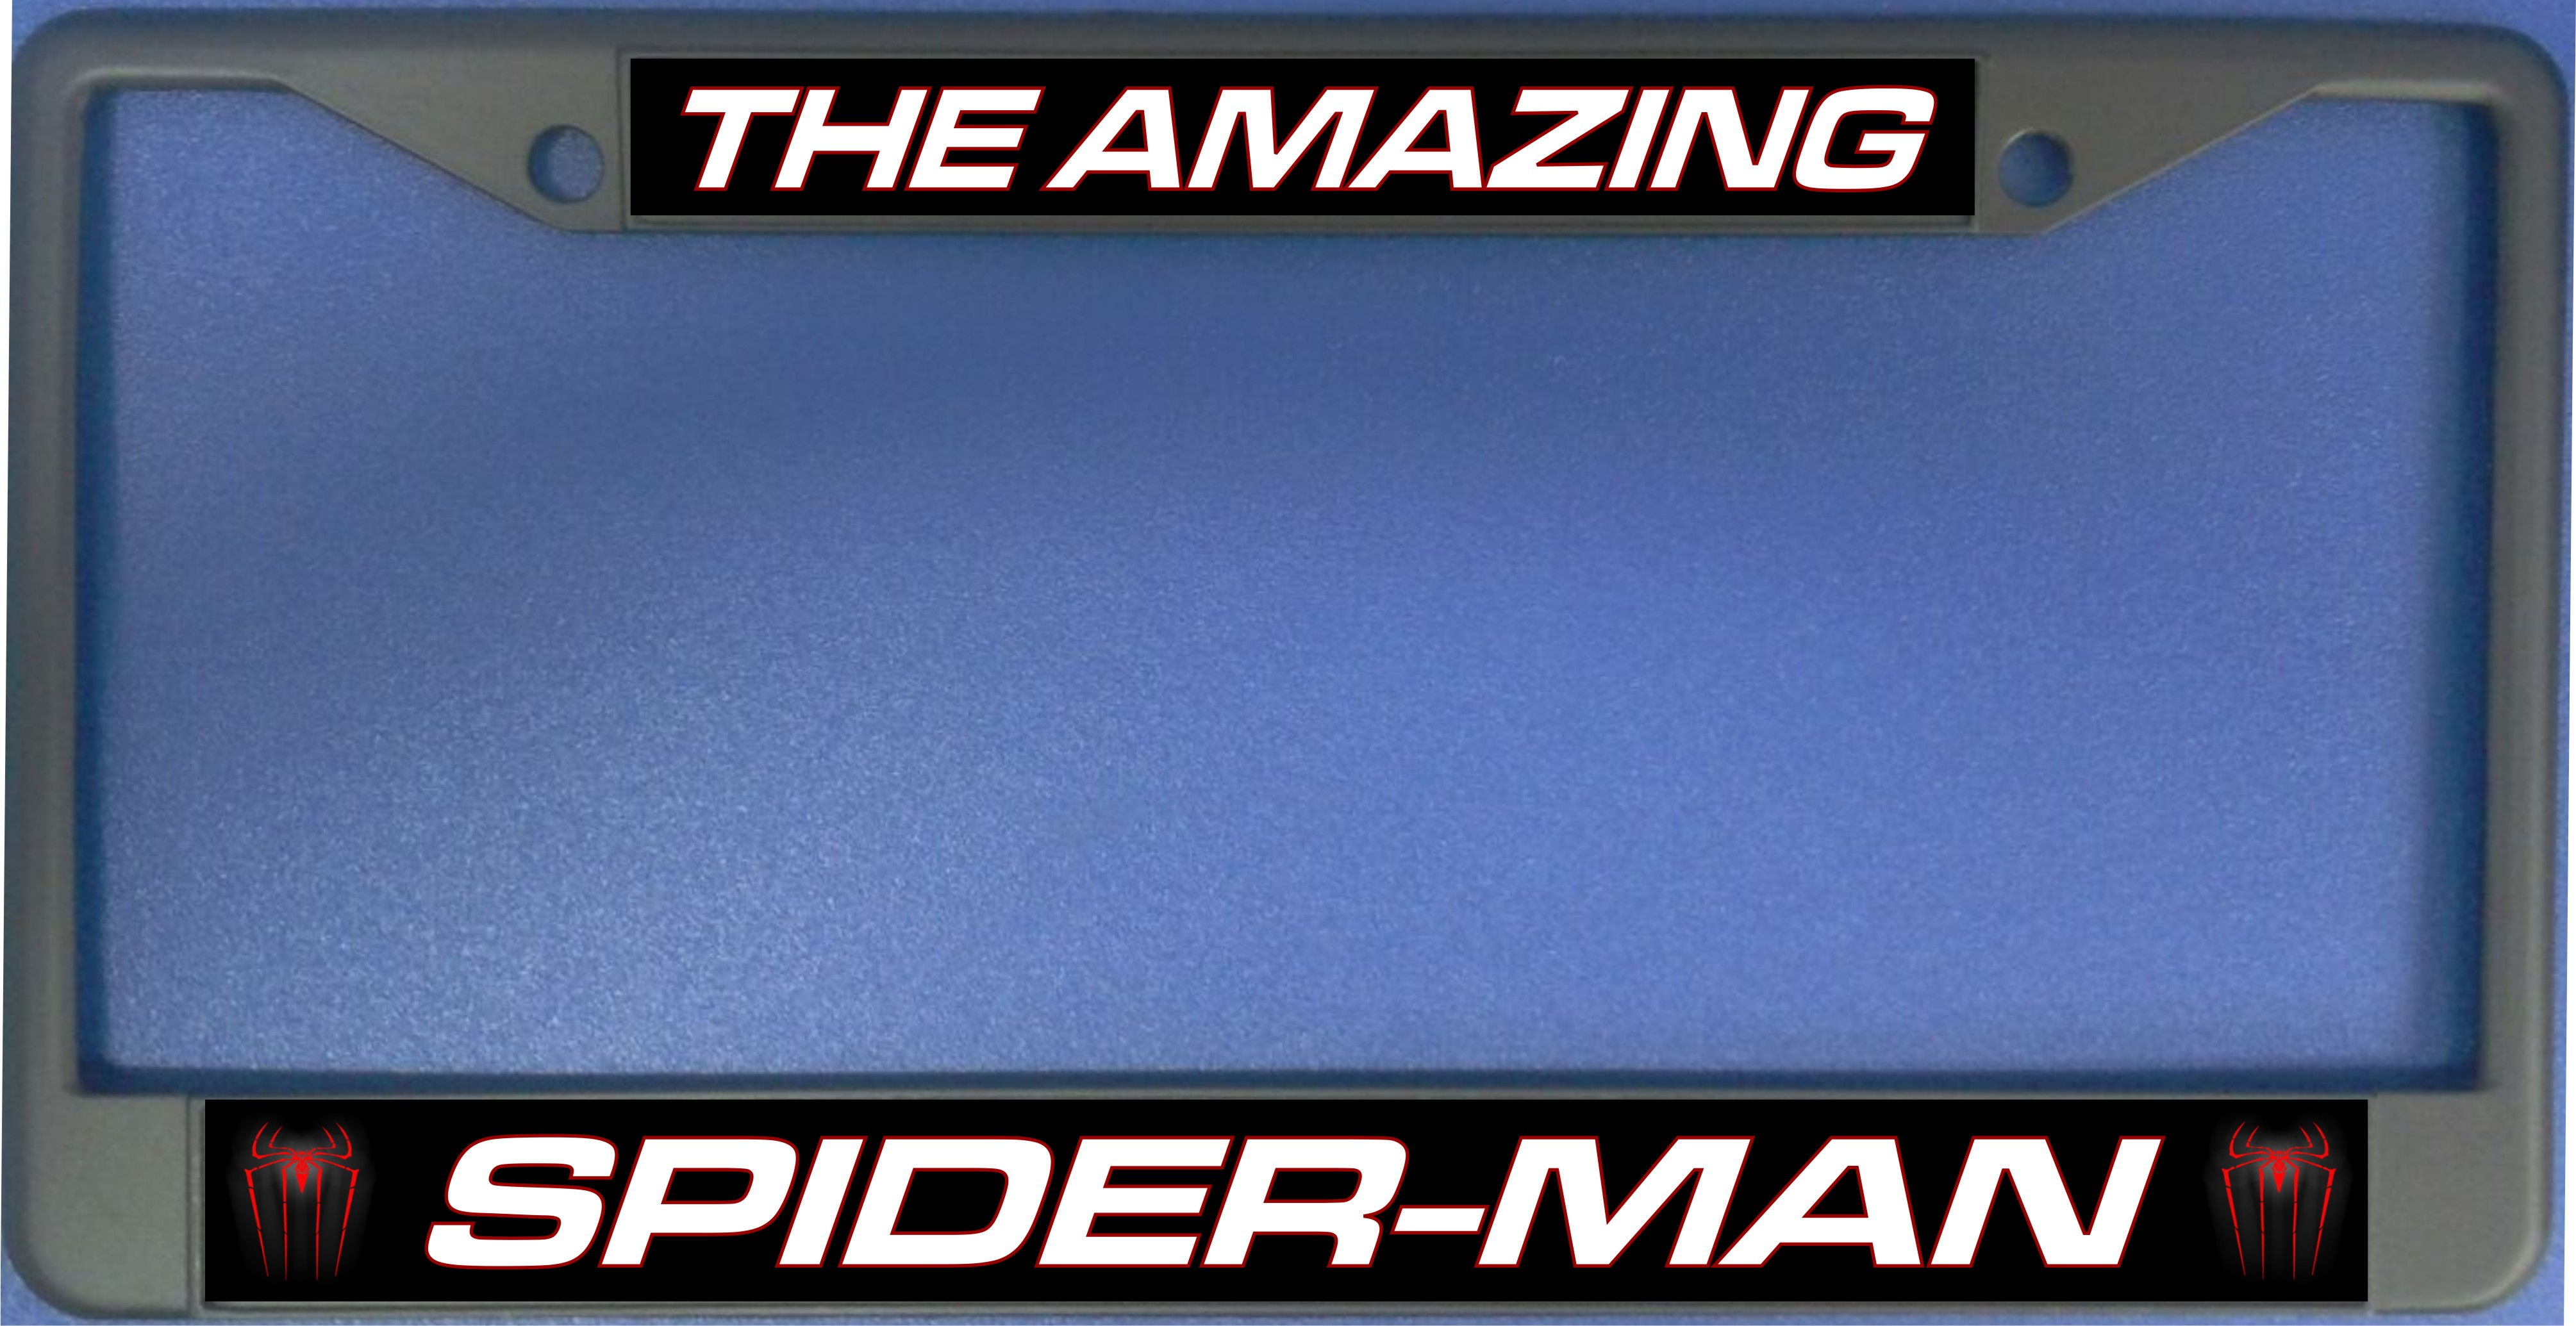 The Amazing Spiderman Photo License Plate Frame The Amazing Spider ...